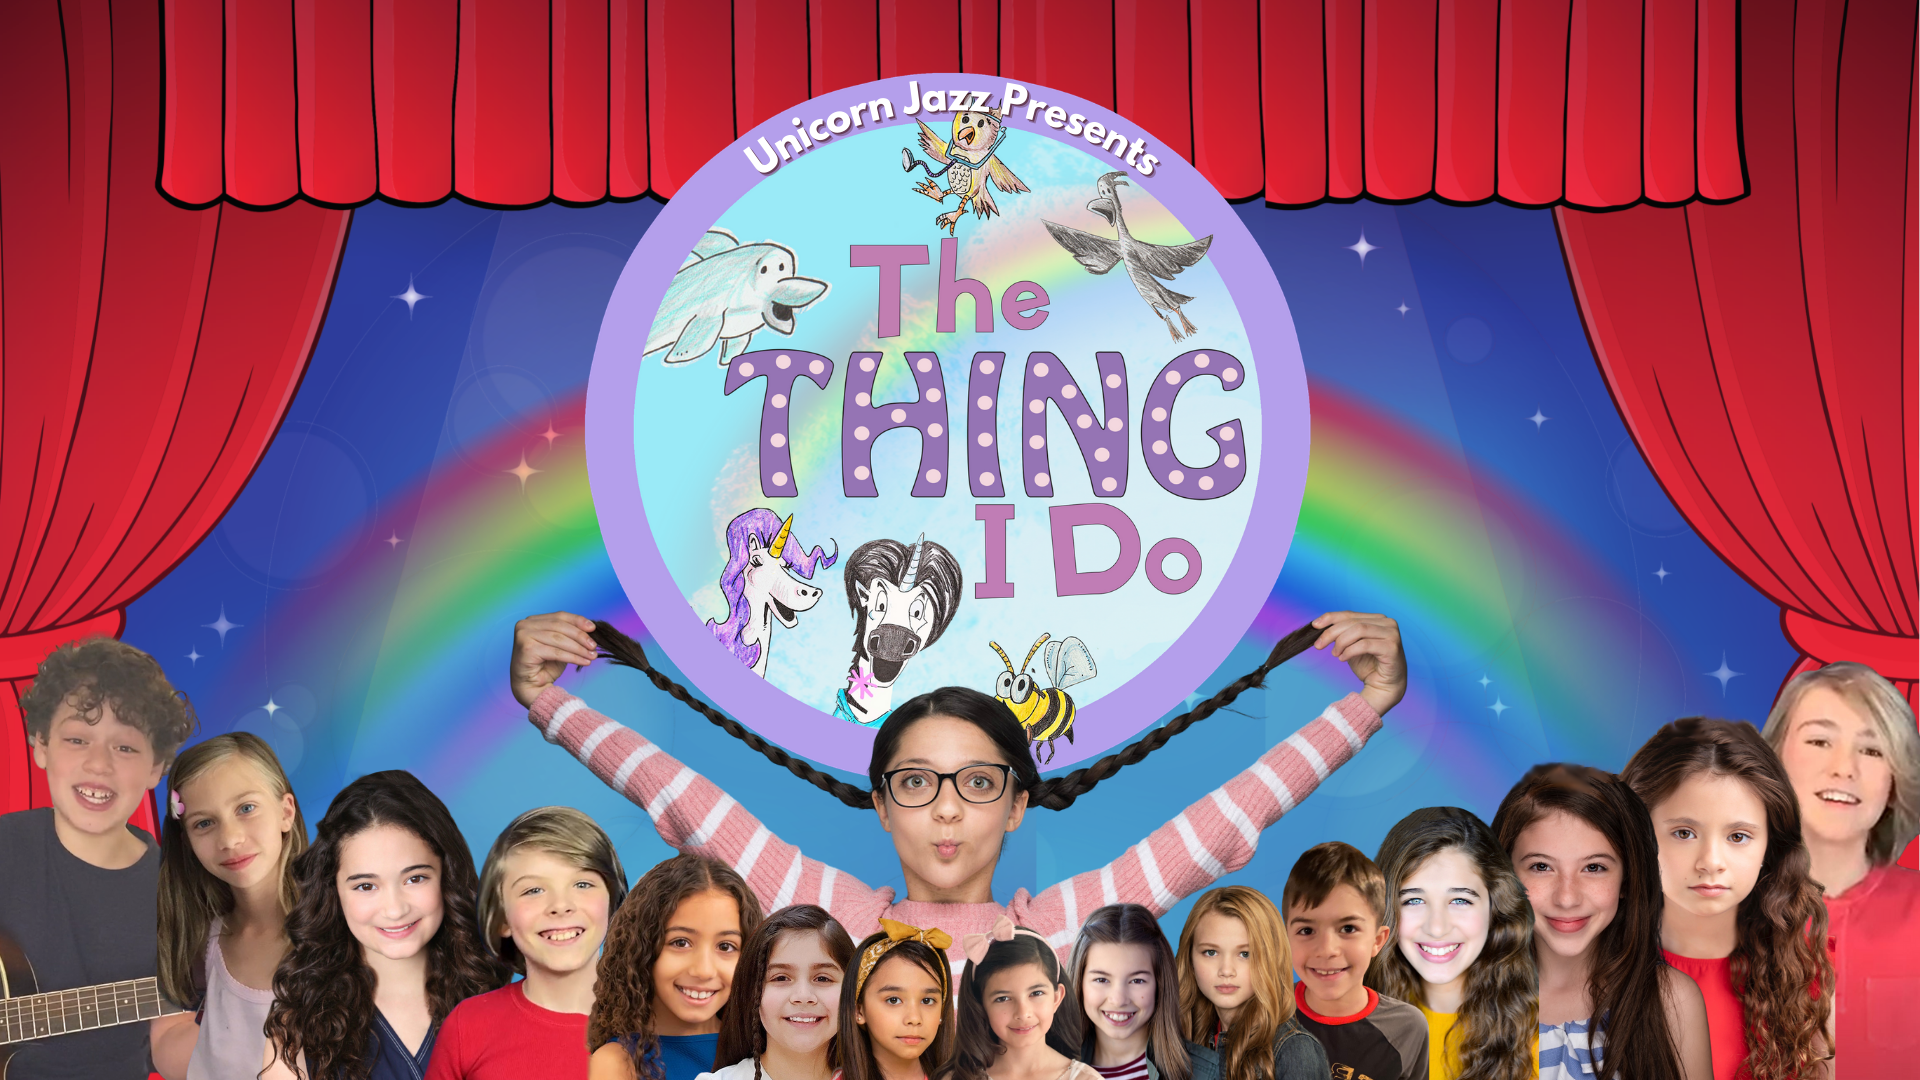 Unicorn Jazz Presents The Thing I Do is a kids show series on Amazon TV and more TV platforms coming soon!